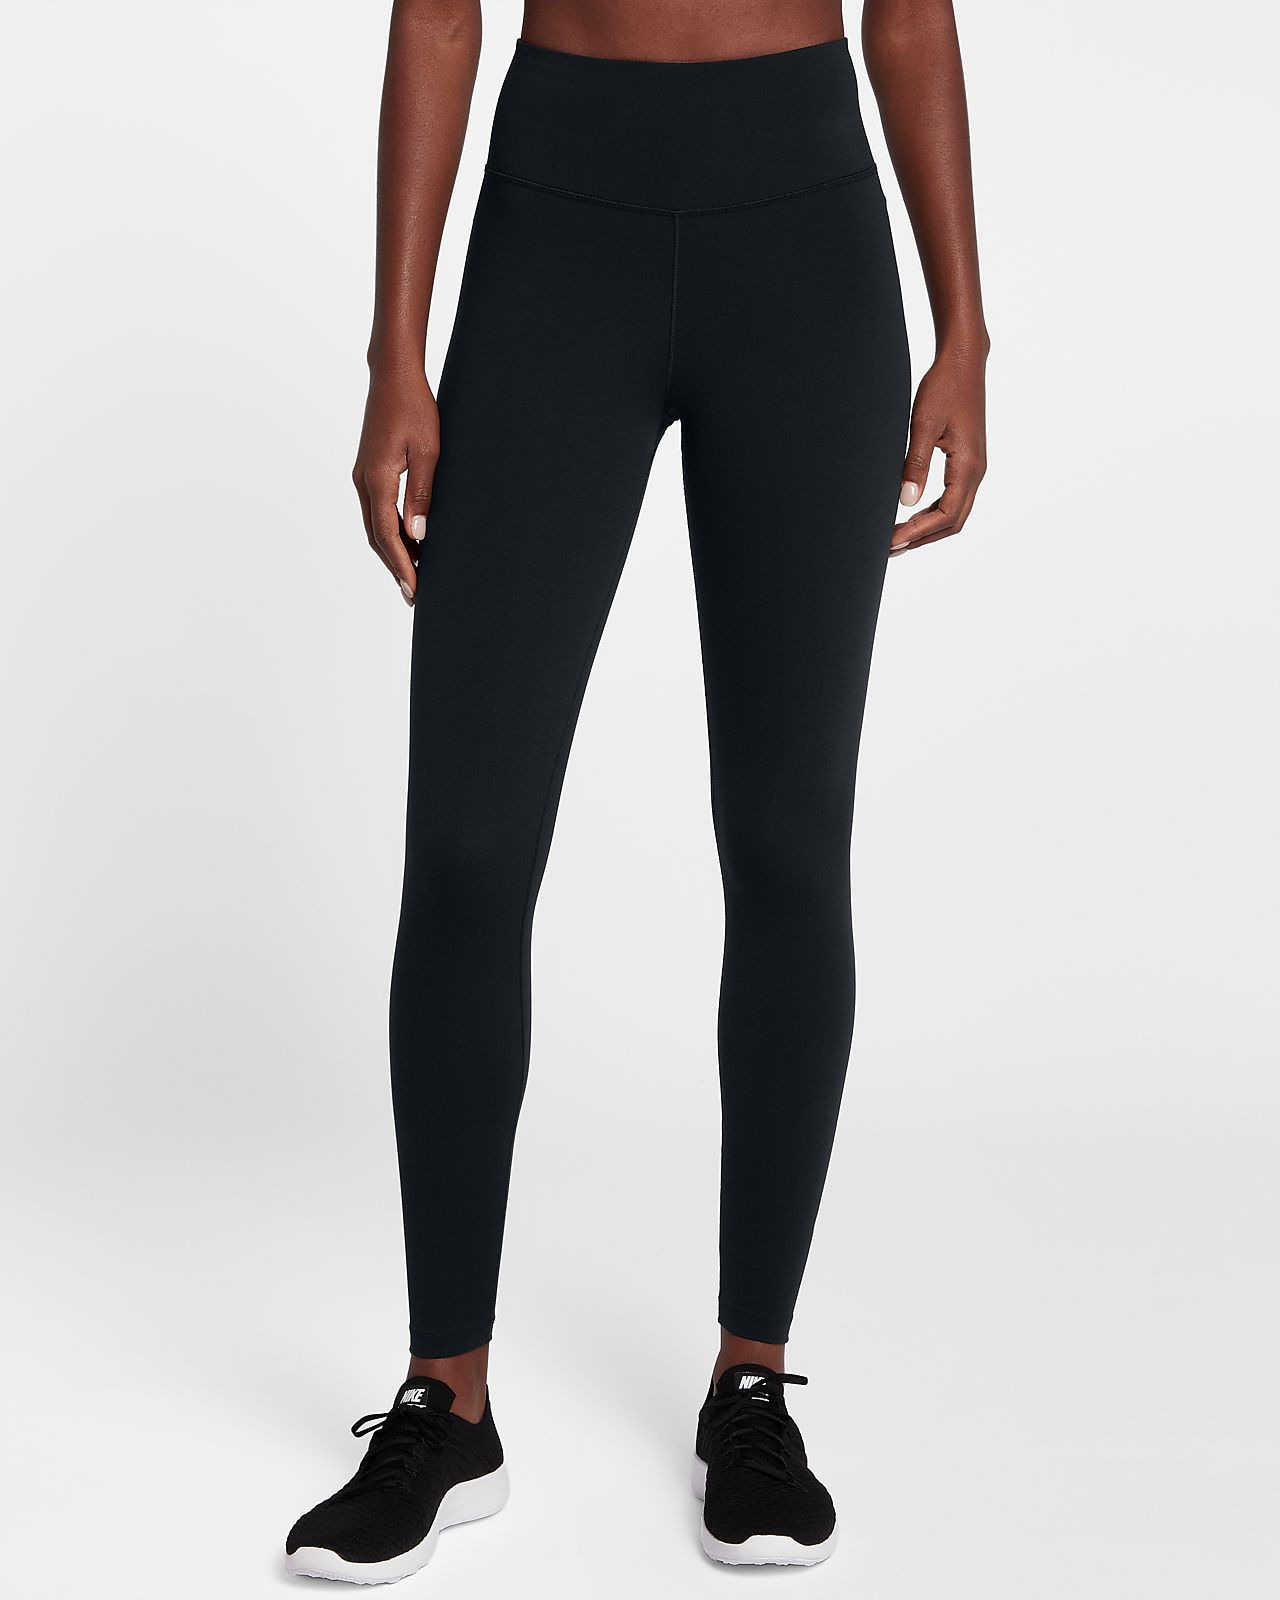 e8ad67e0b1f8d Nike Sculpt Lux Women's High-Waist Training Tights. Nike.com AE